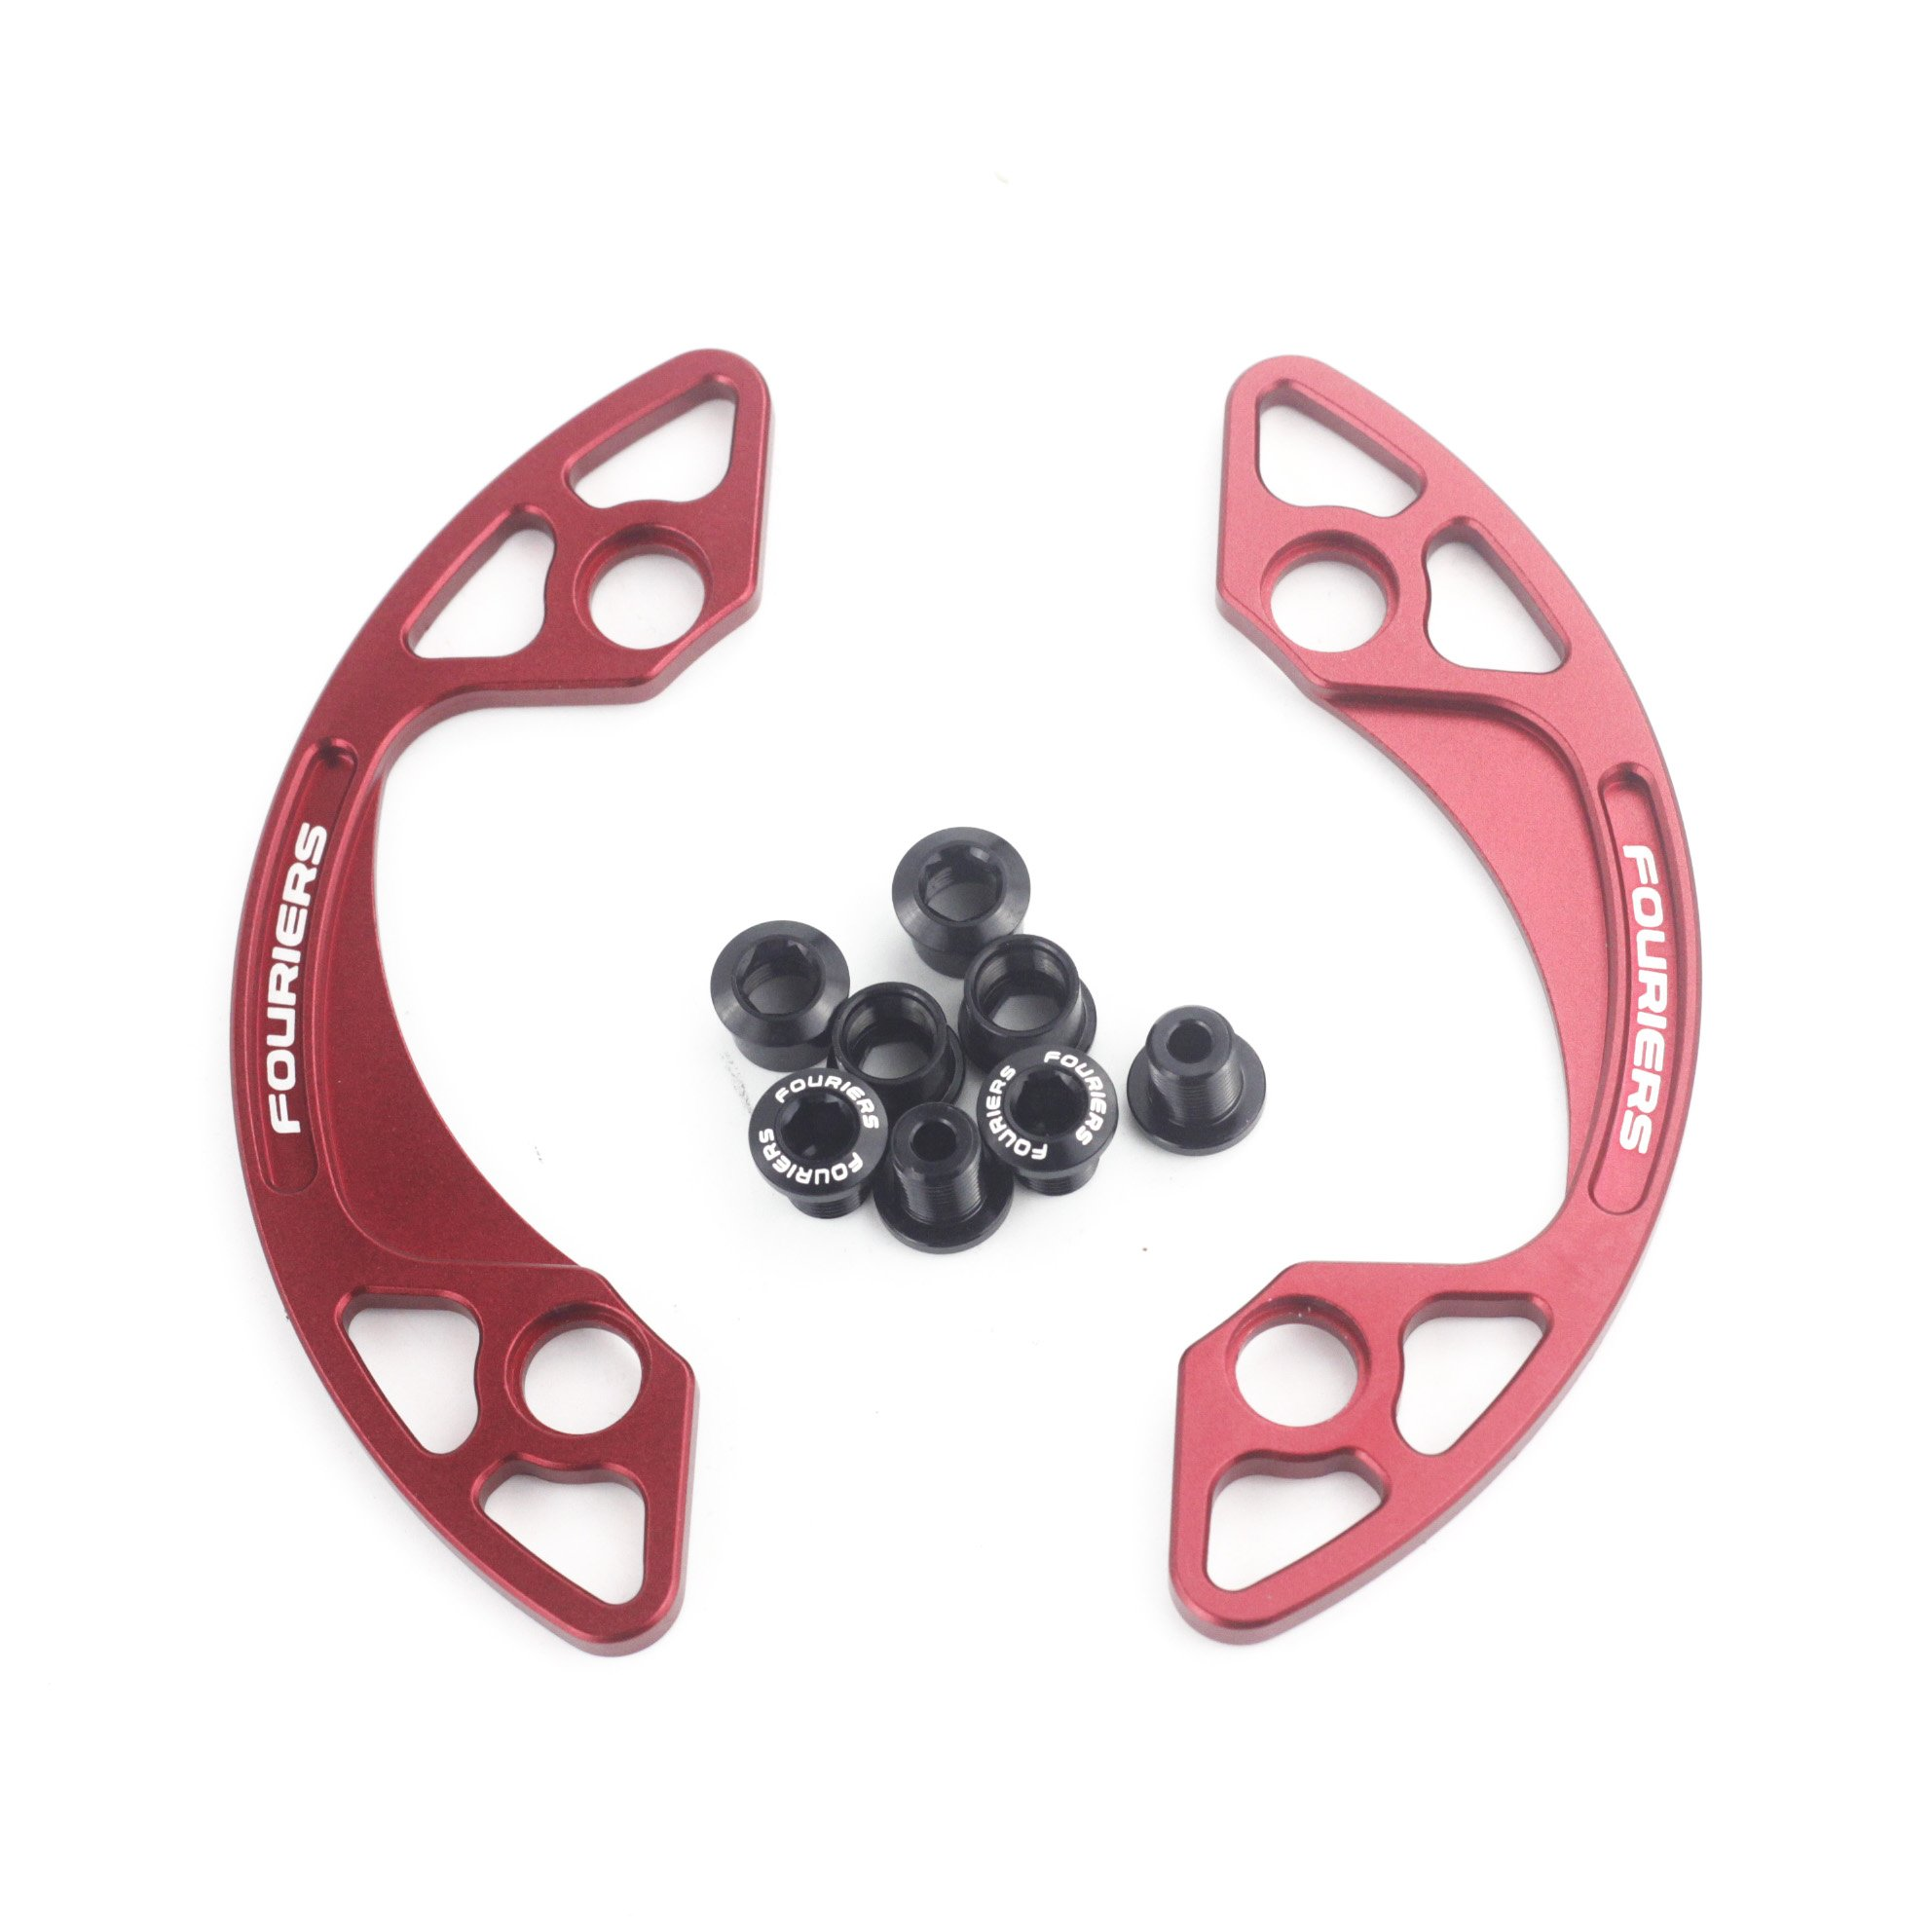 Fouriers CNC Alloy MTB Chain Bash Guide 1/2 Shape Design Chain Guard Protector 30-40T P.C.D 104mm (Red, 34-36T)